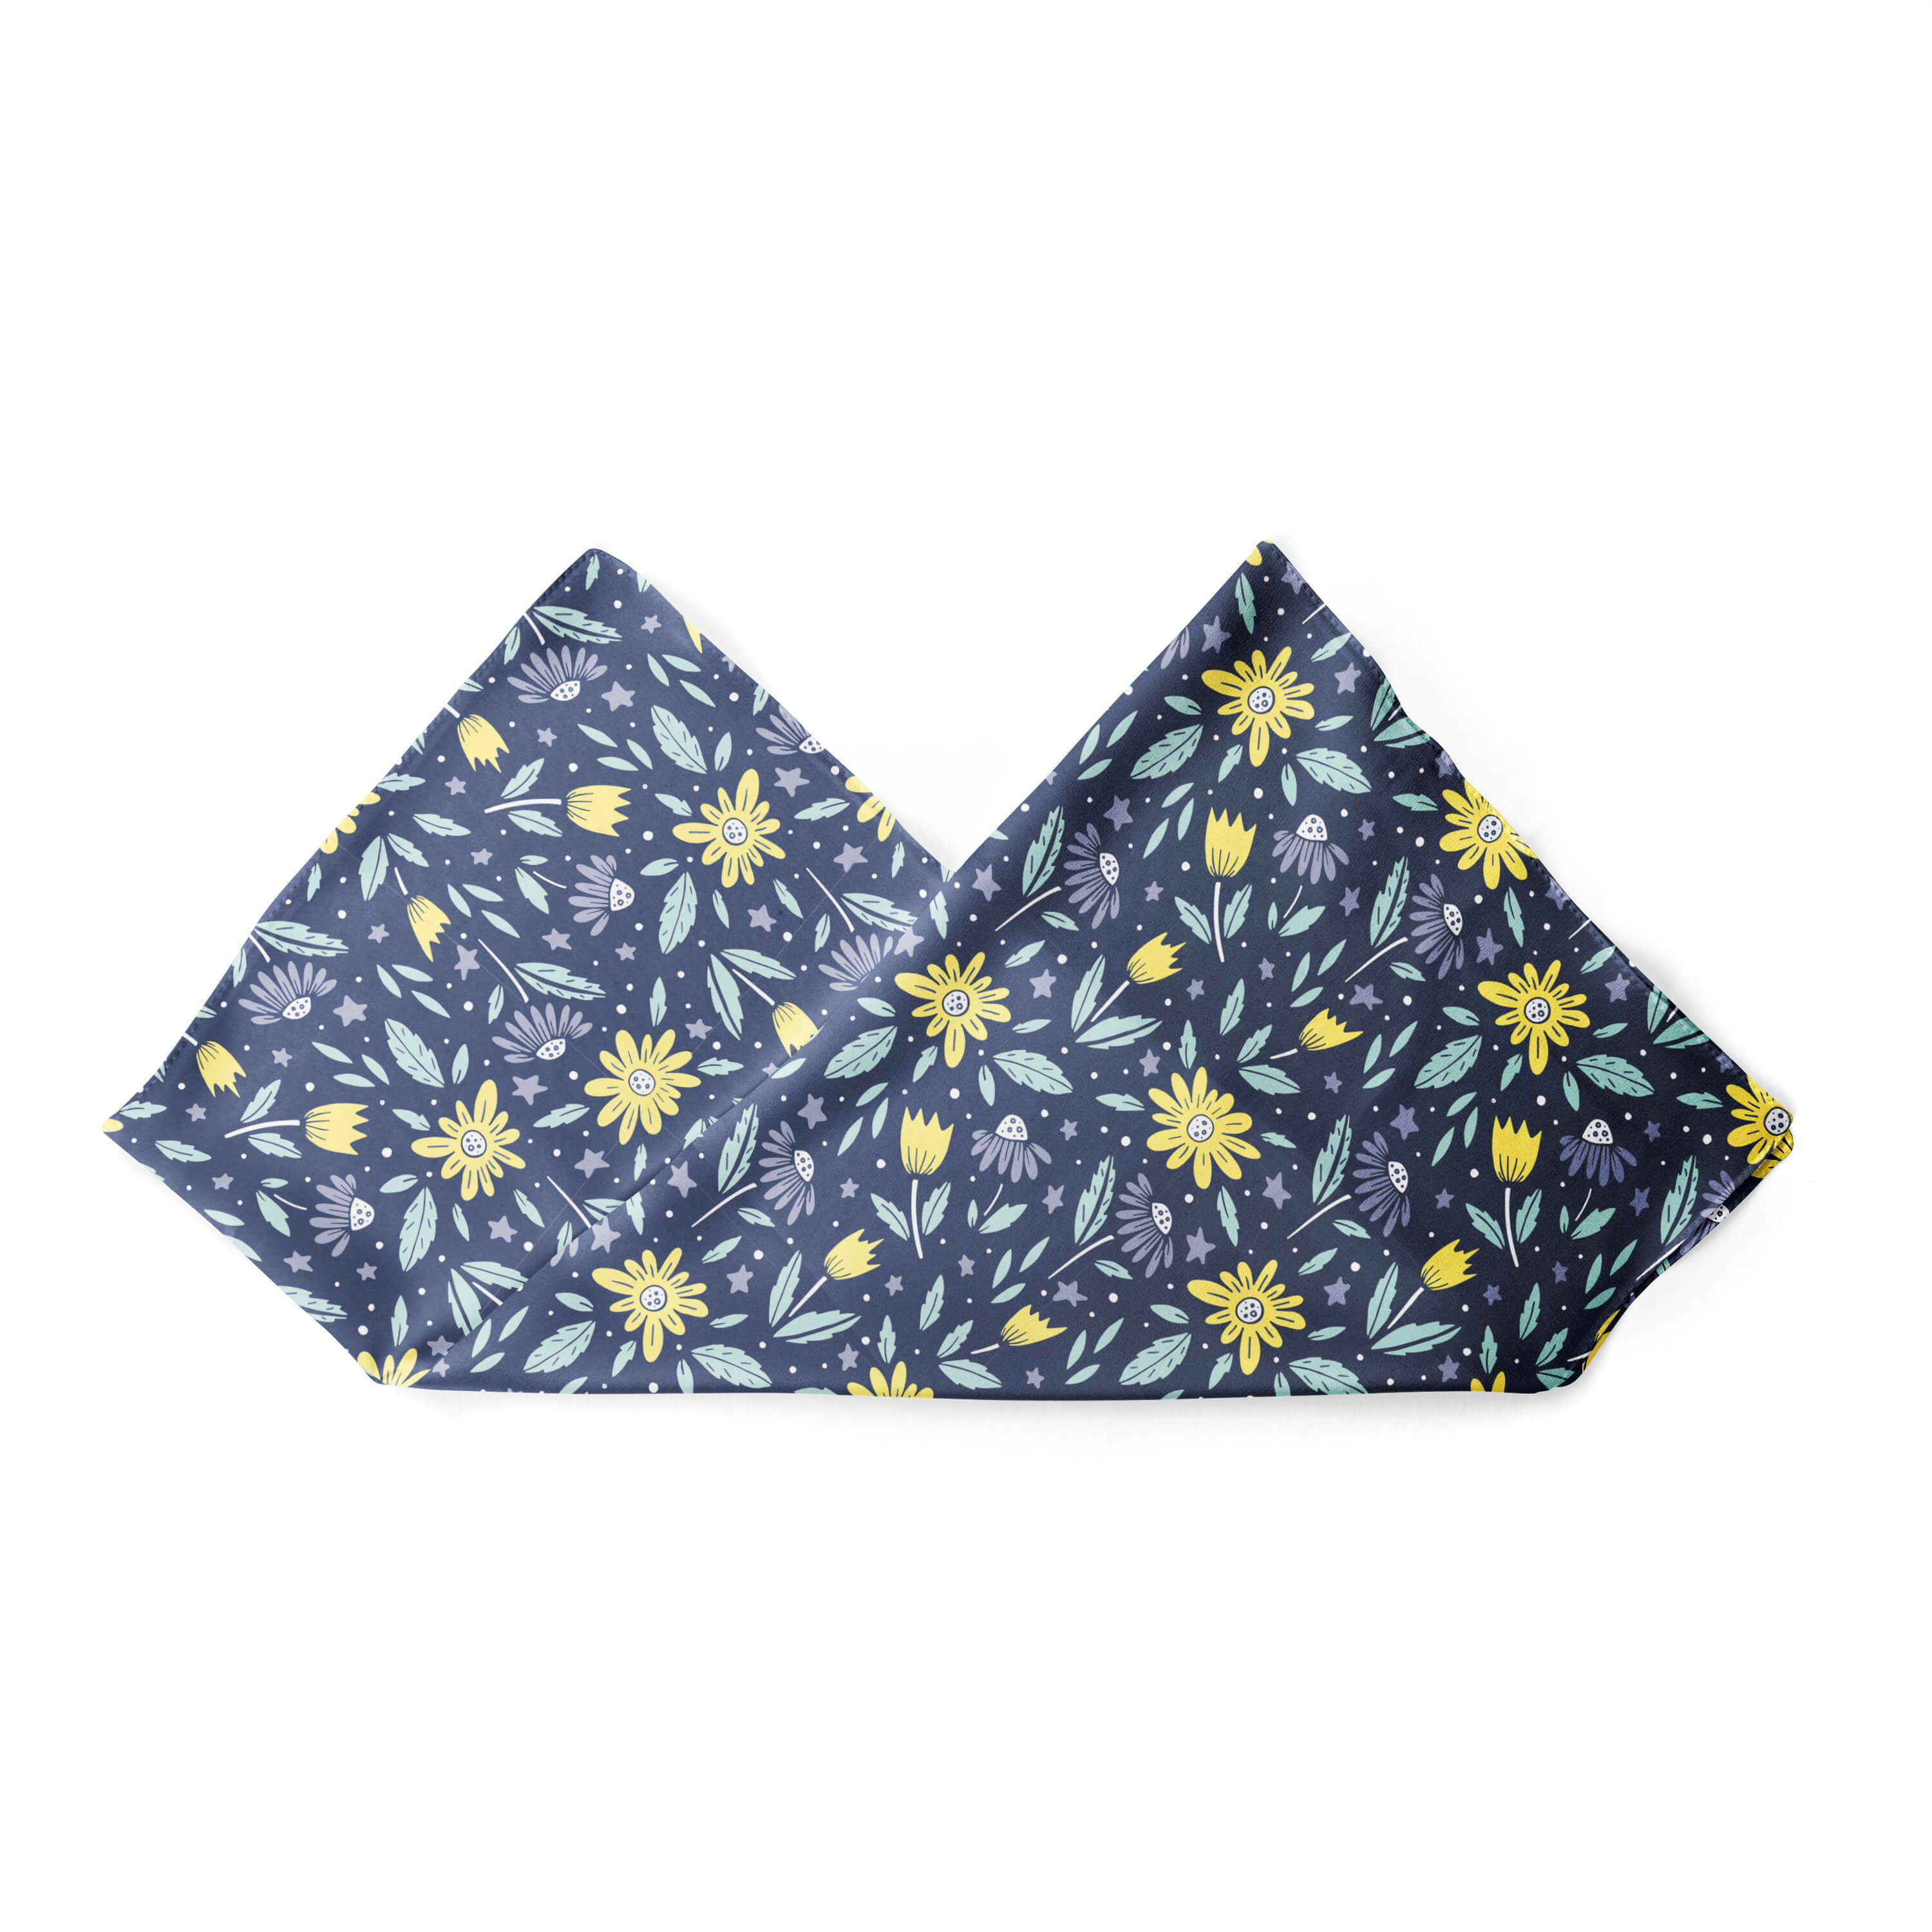 Banana Bandanas Moonflower dog bandana alternative photo